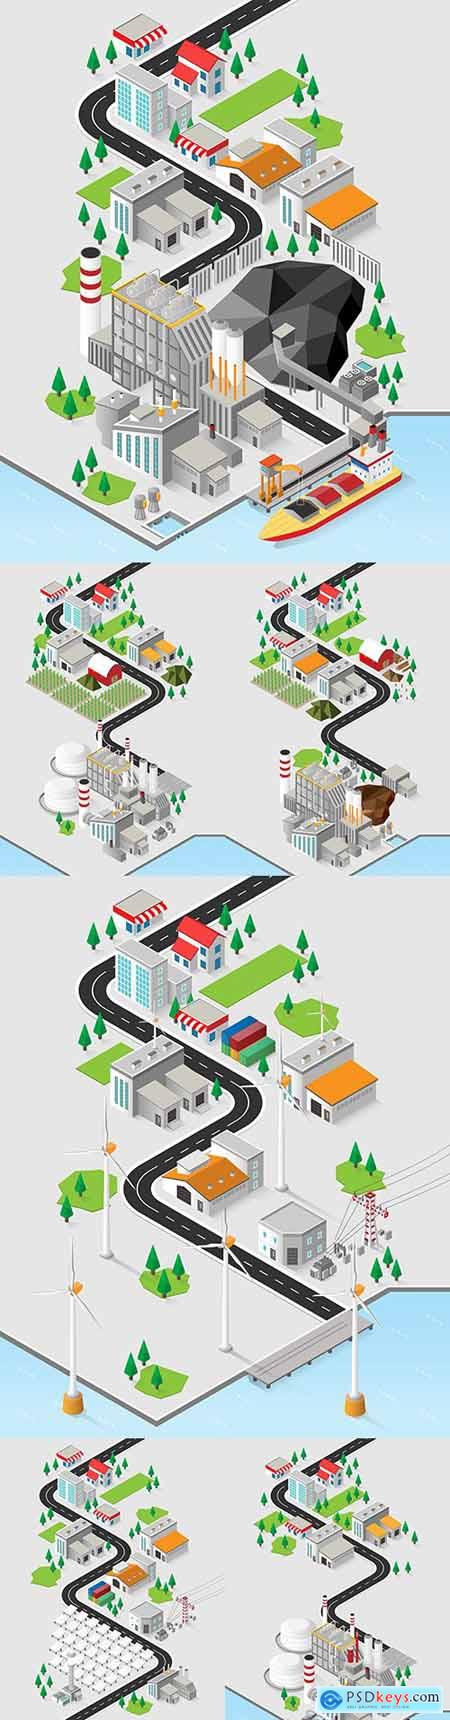 Diesel energy and diesel power plant with isometric graphics